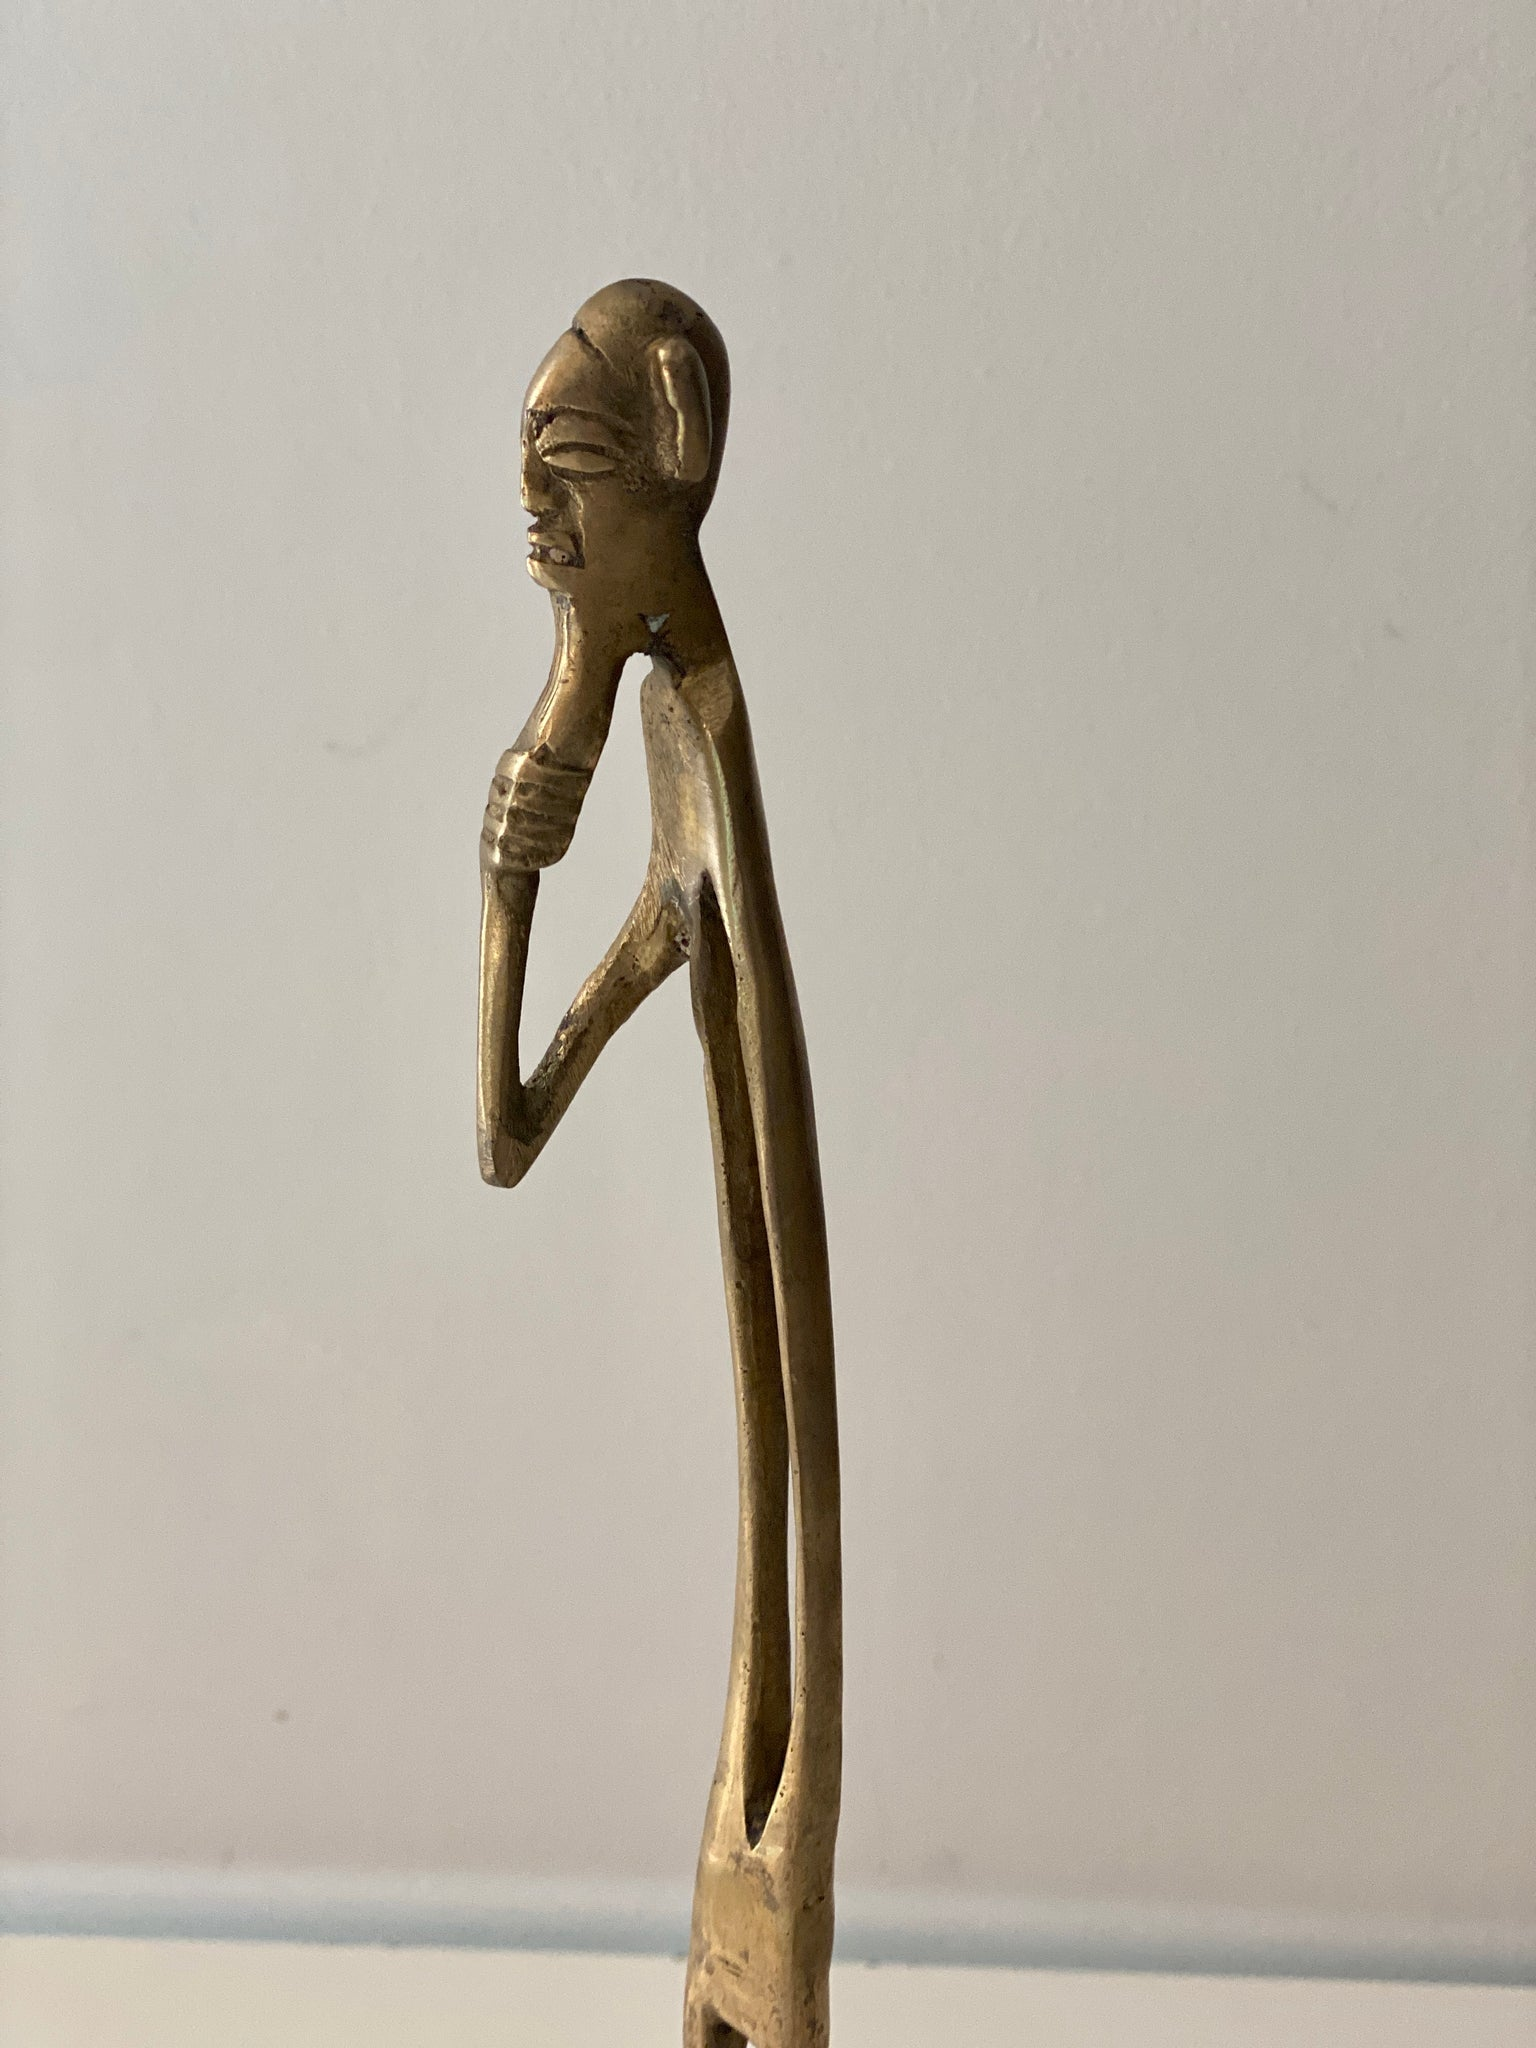 Kenya  Brass Dogon Male Figurine Sculptures  in Giacometti style.